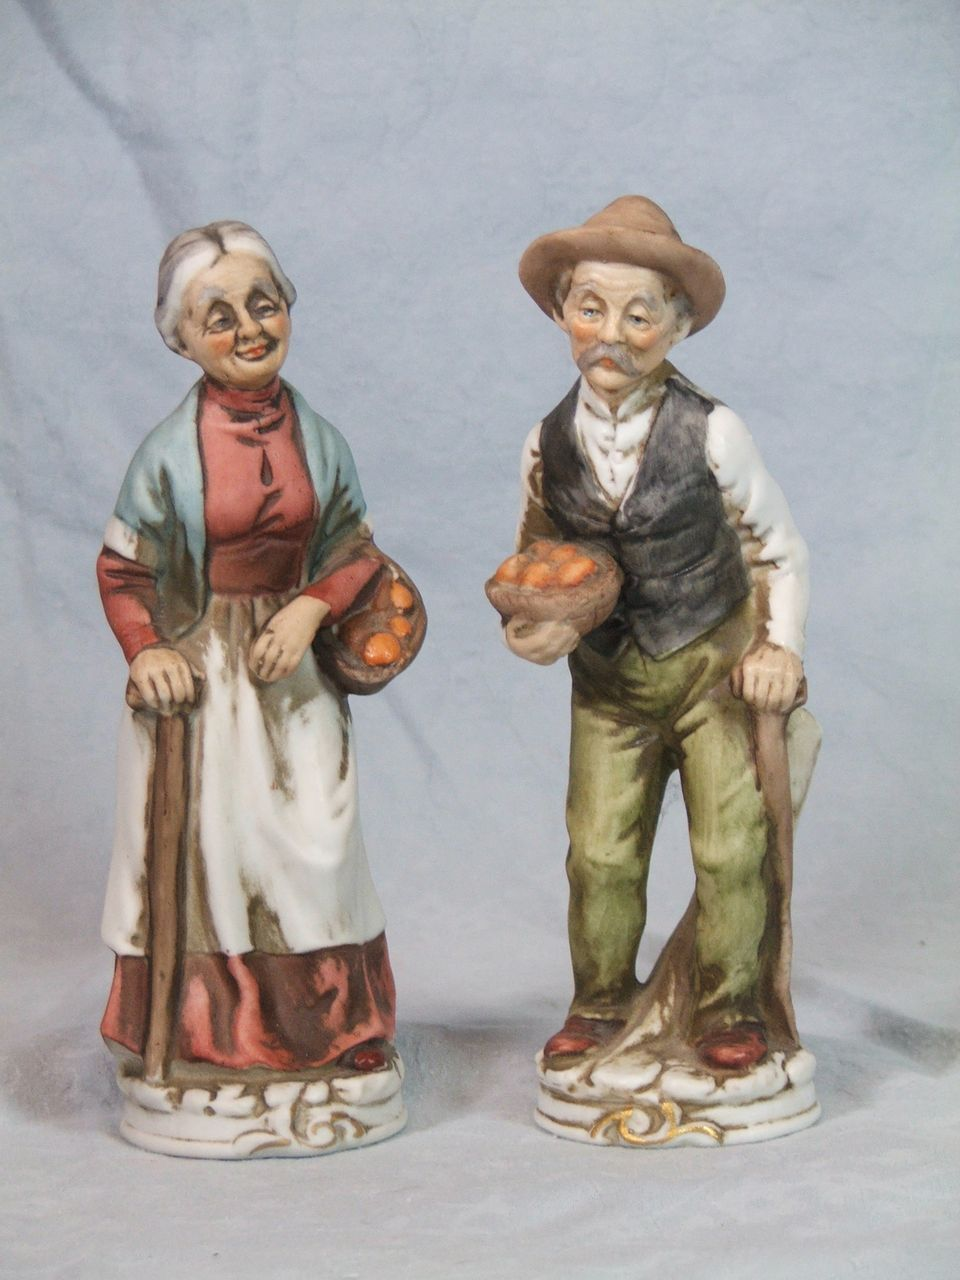 Ardco Dallas Fine Quality Man/Woman Figurines